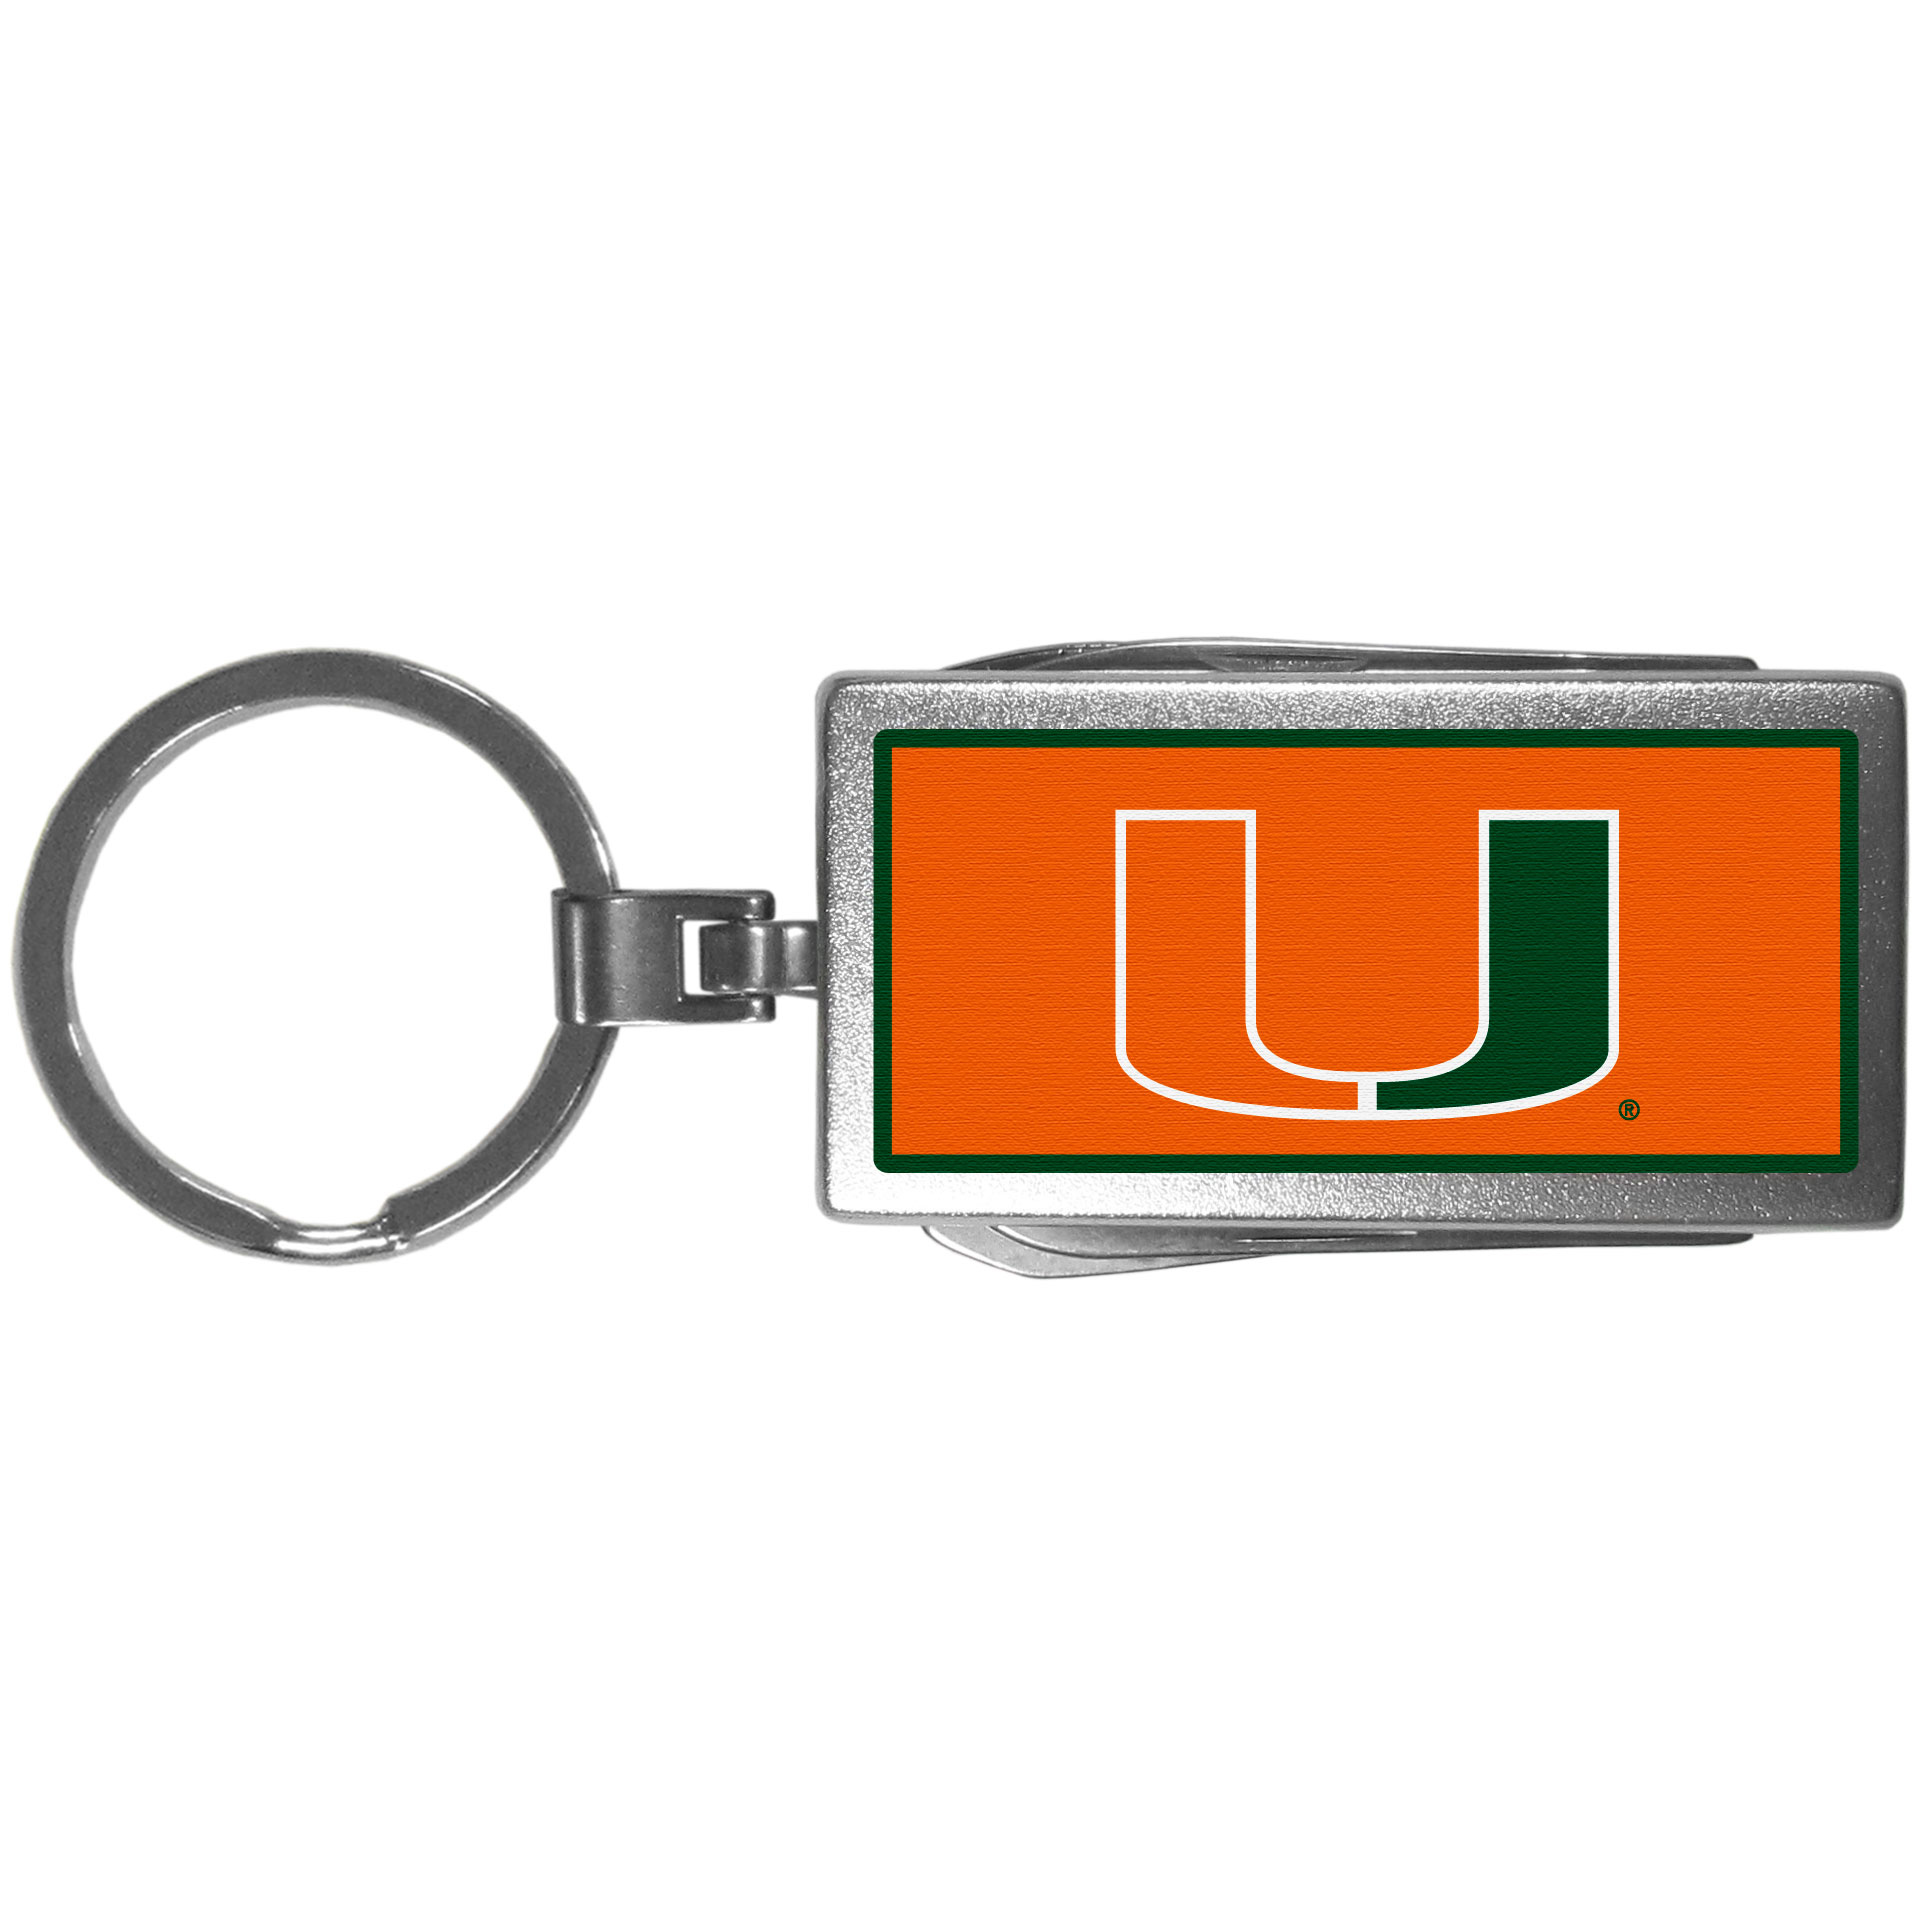 Miami Hurricanes Multi-tool Key Chain, Logo - Be the hero at the tailgate, camping, or on a Friday night with your Miami Hurricanes Multi-Tool Keychain which comes complete with bottle opener, scissors, knife, nail file and screw driver. Be it opening a package or a beverage Siskiyou's Multi-Tool Keychain goes wherever your keys do. The keychain hangs at 4 inches long when closed.